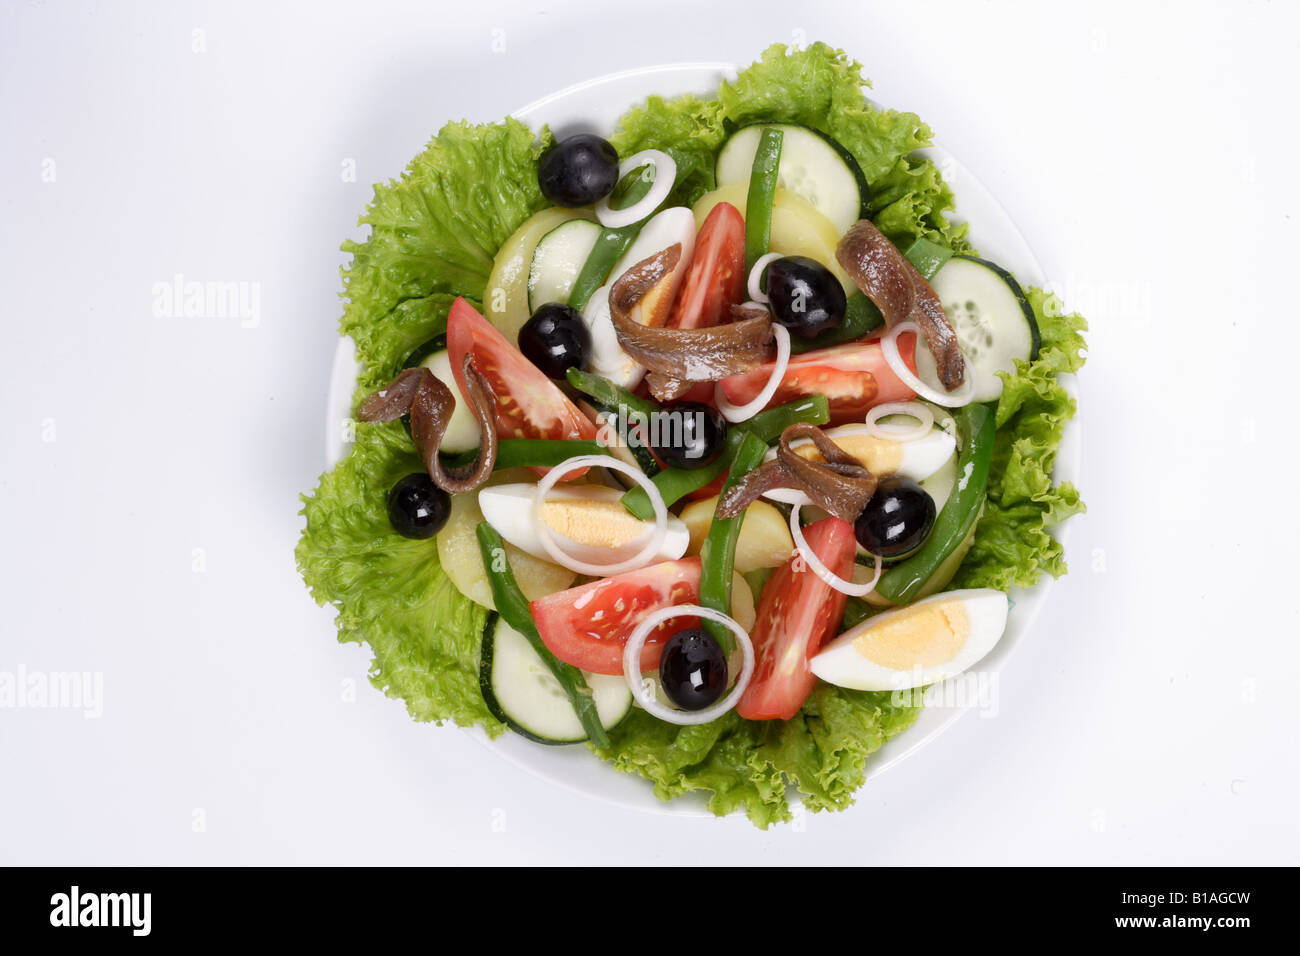 Niza salad - Stock Image